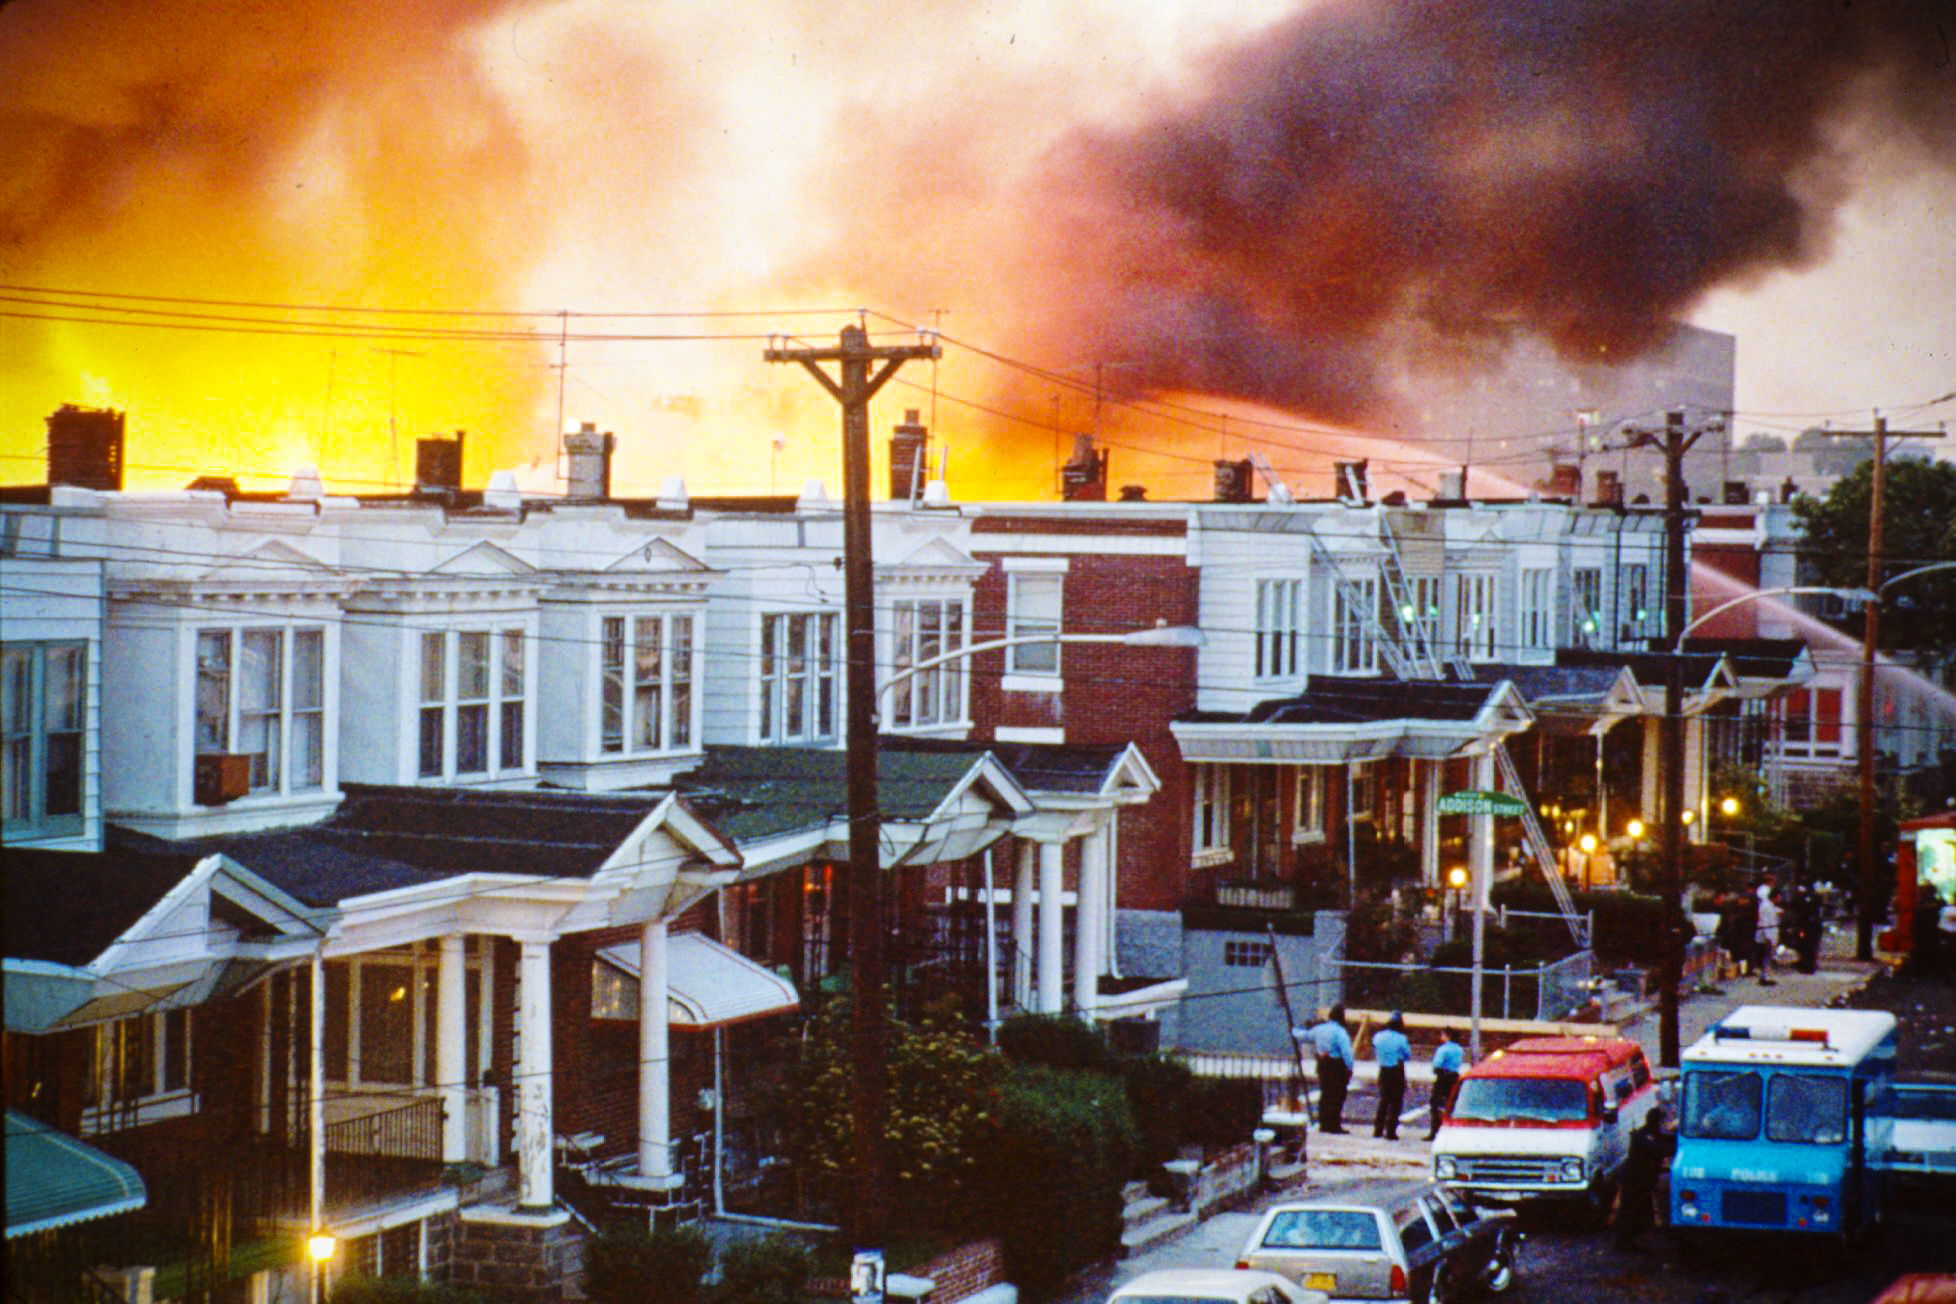 Row houses burn after local officials dropped a bomb on the MOVE house, home of a black liberation group, in Philadelphia, Pennsylvania, on May 13, 1985.